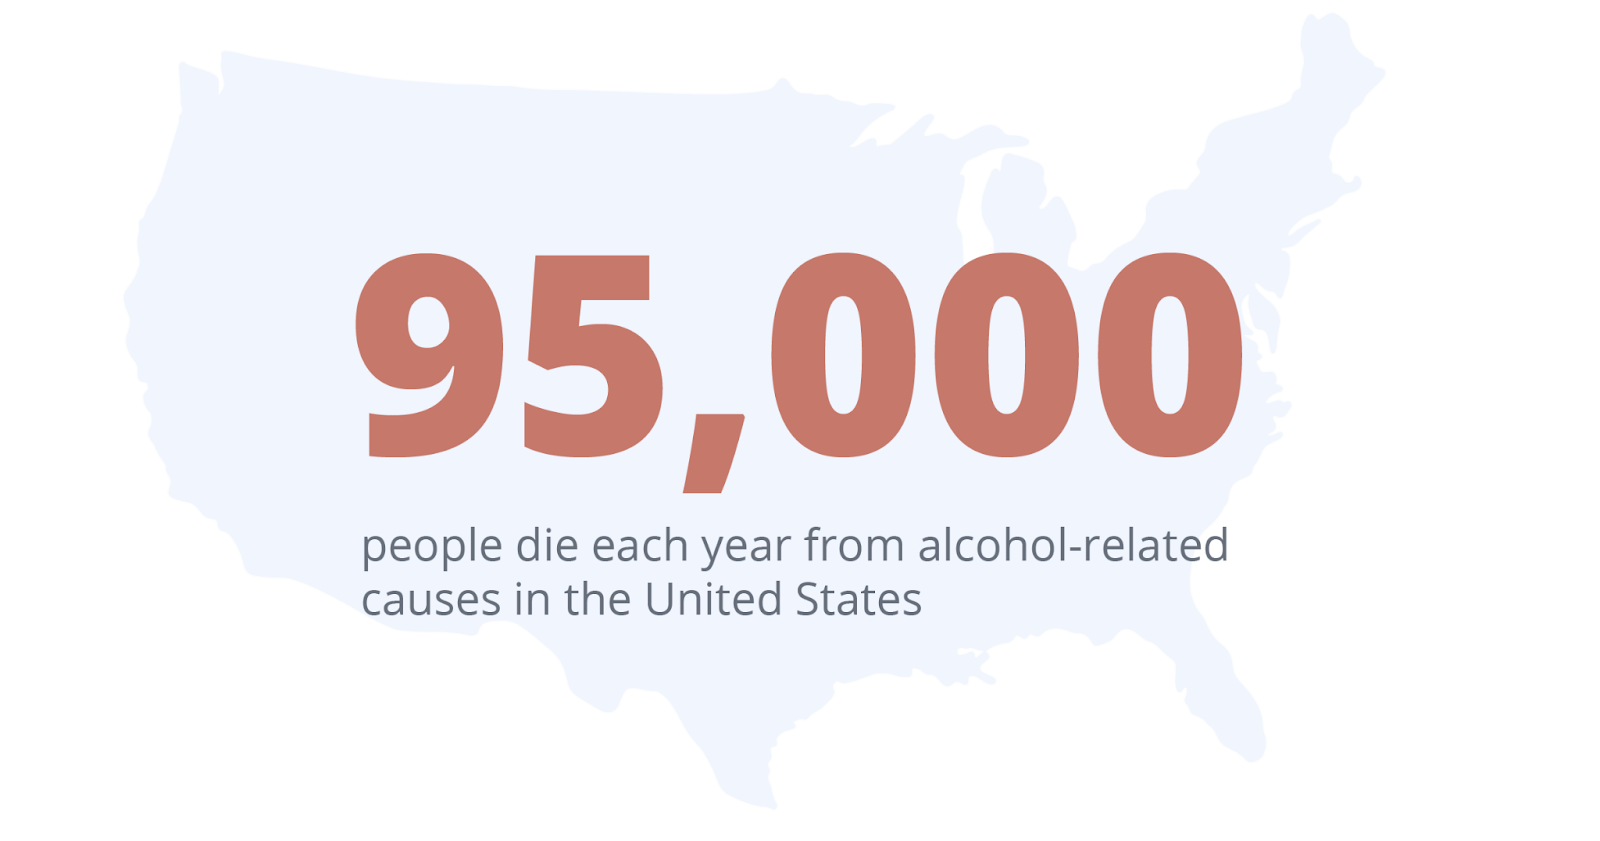 95,000 people die each year from alcohol-related causes in the united states.